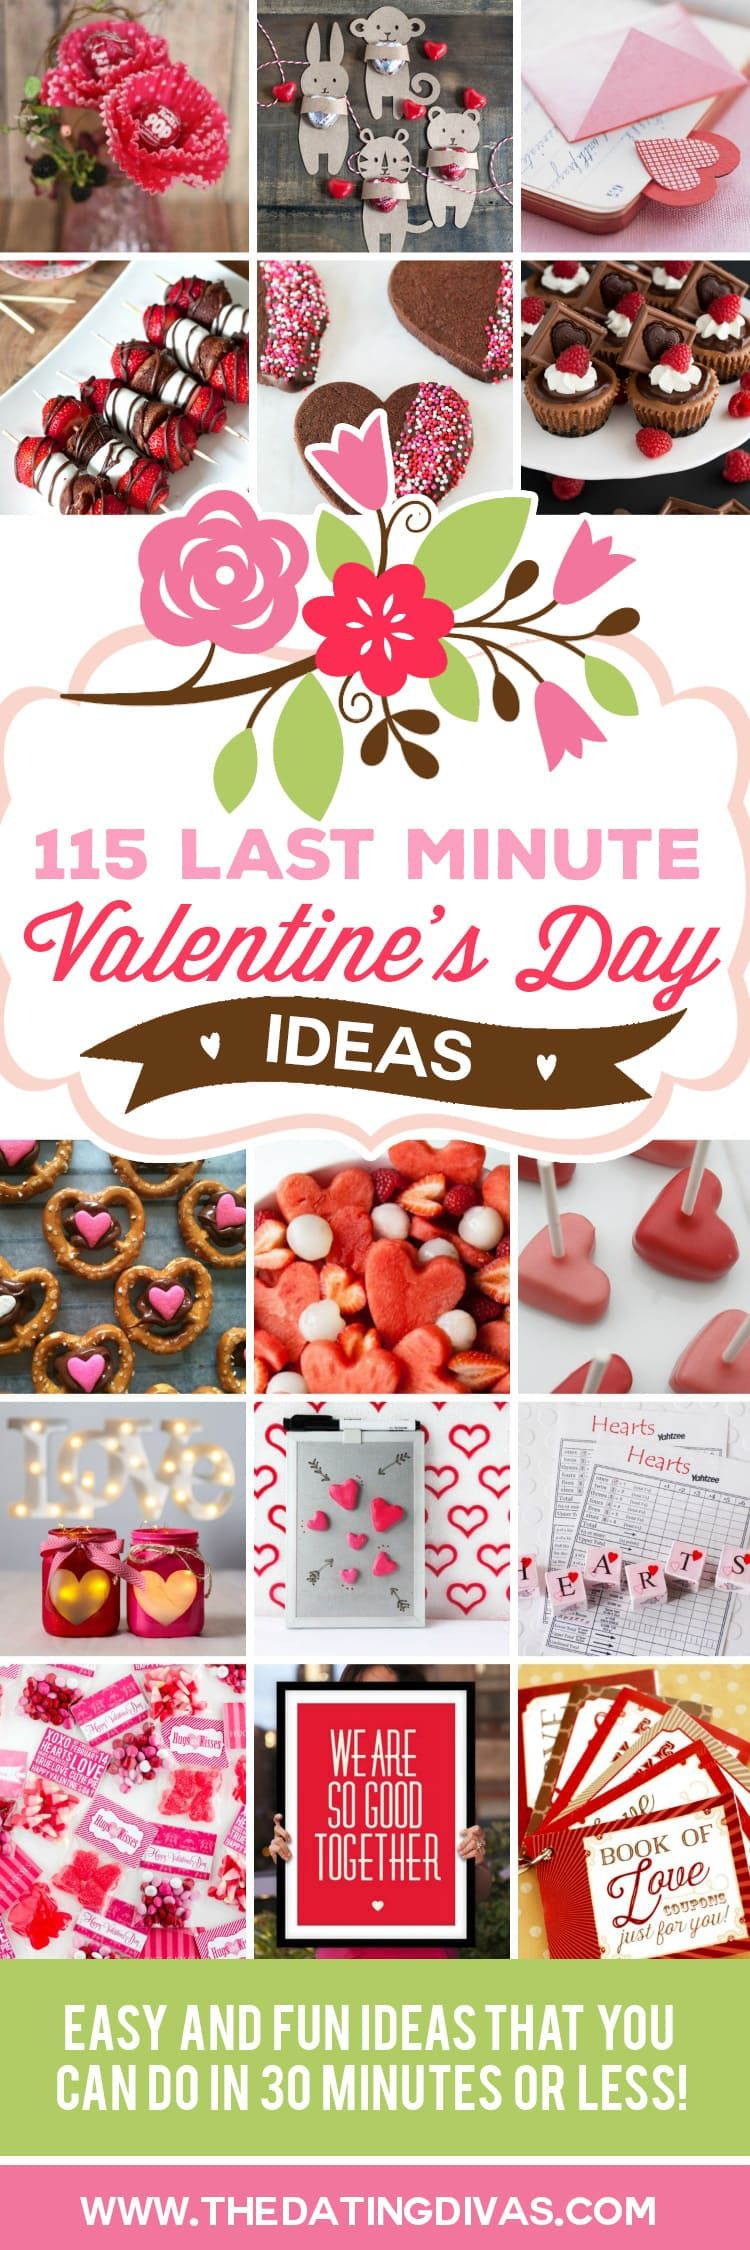 115 last minute valentines day ideas - Last Minute Valentines Gifts For Him